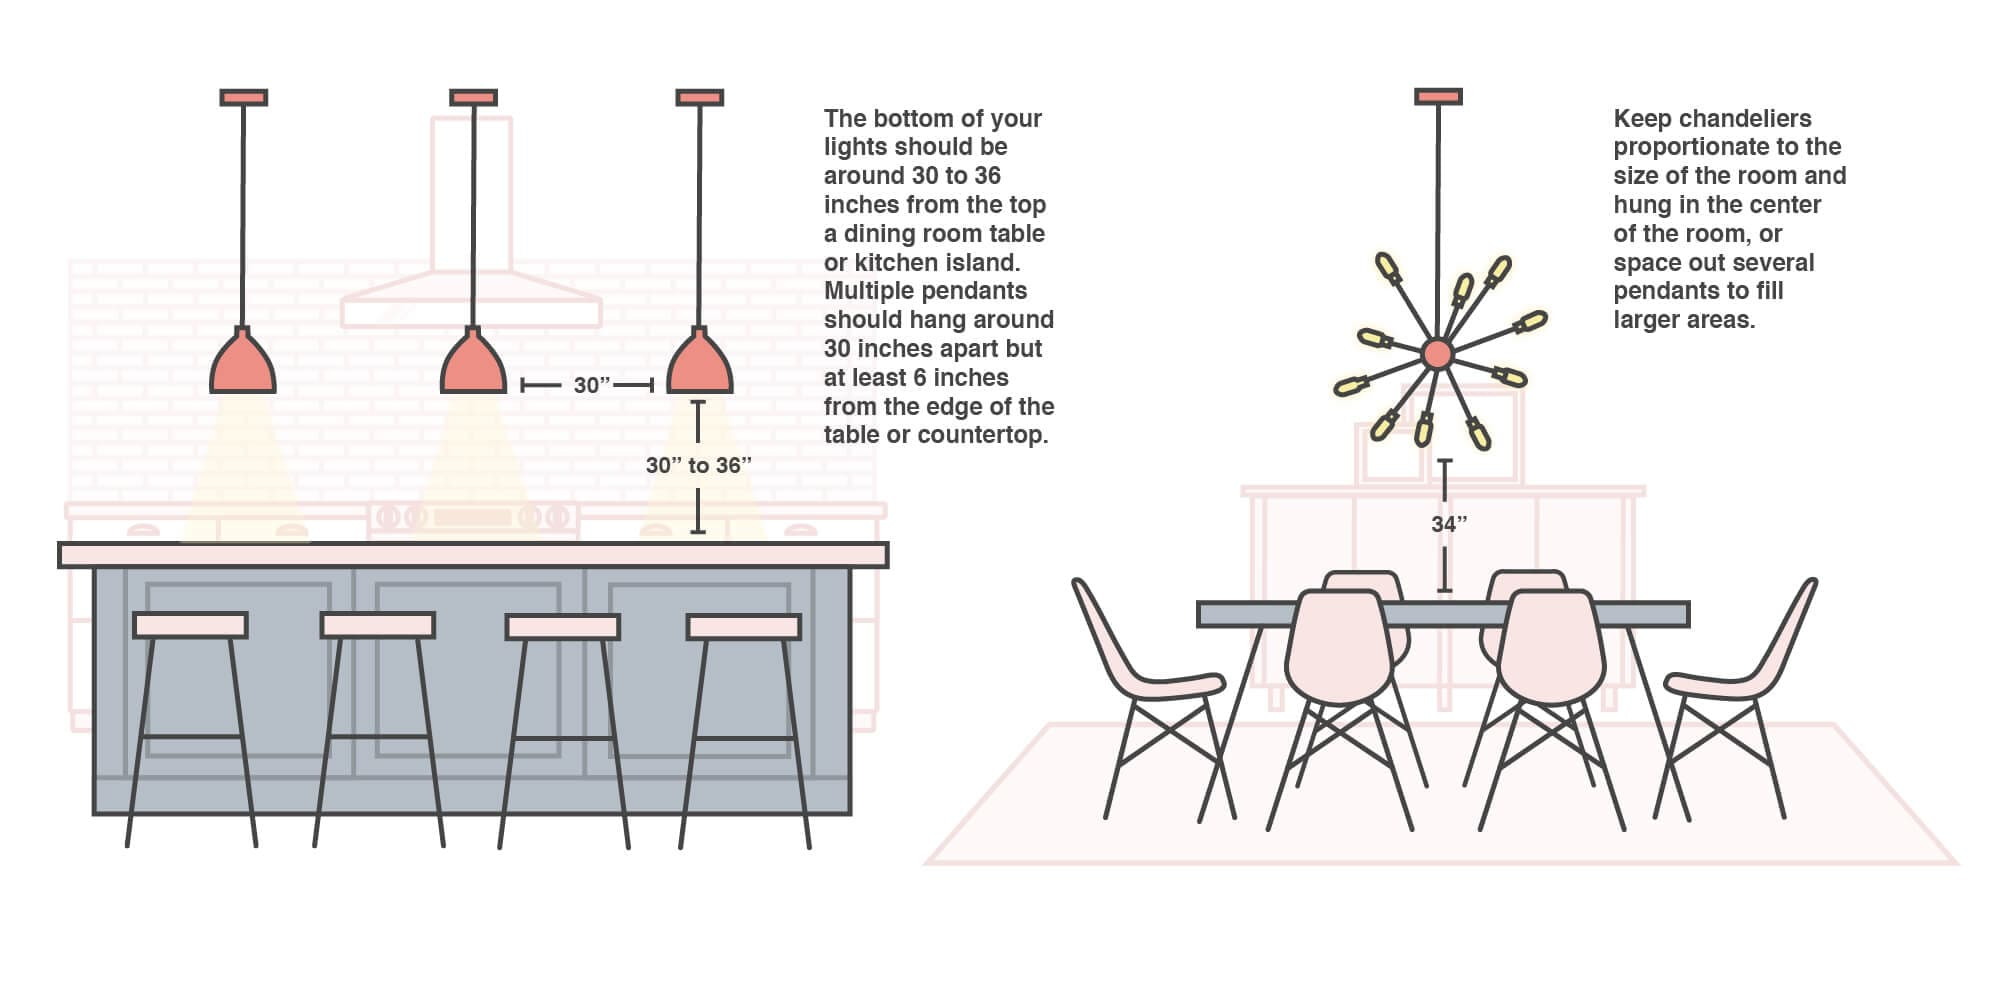 An infographic of pendants hanging over a kitchen island and a chandelier hanging over a dining table